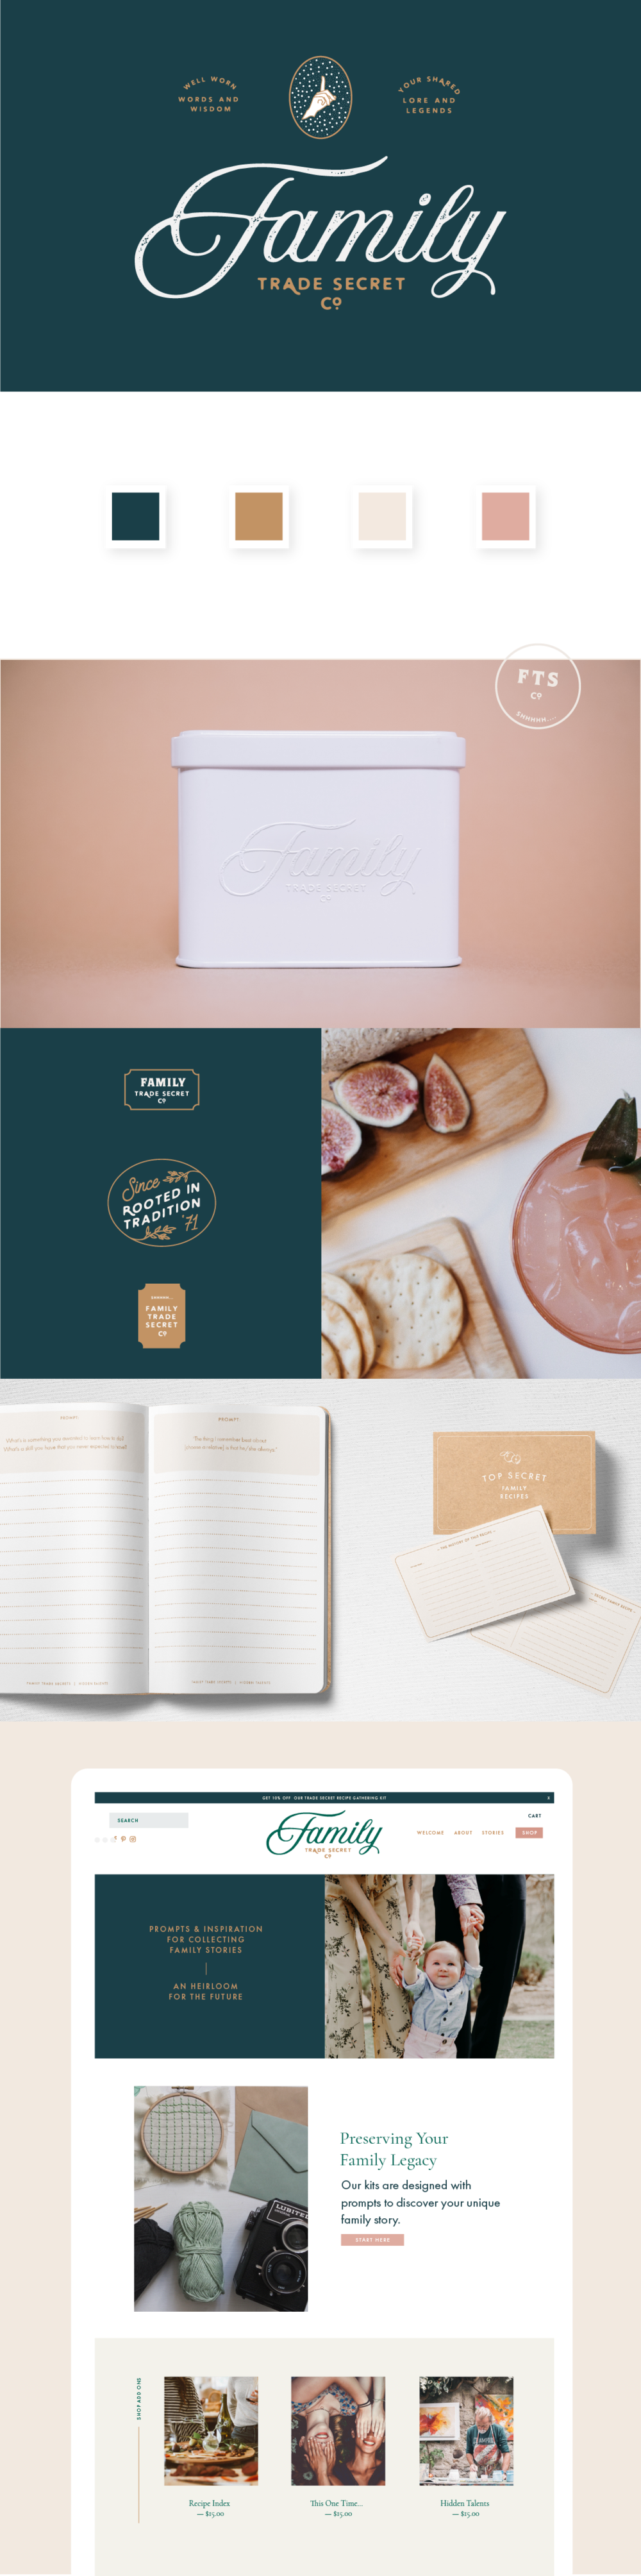 Family Trade Secret Branding, Website, and Print Design by Meghan Lambert